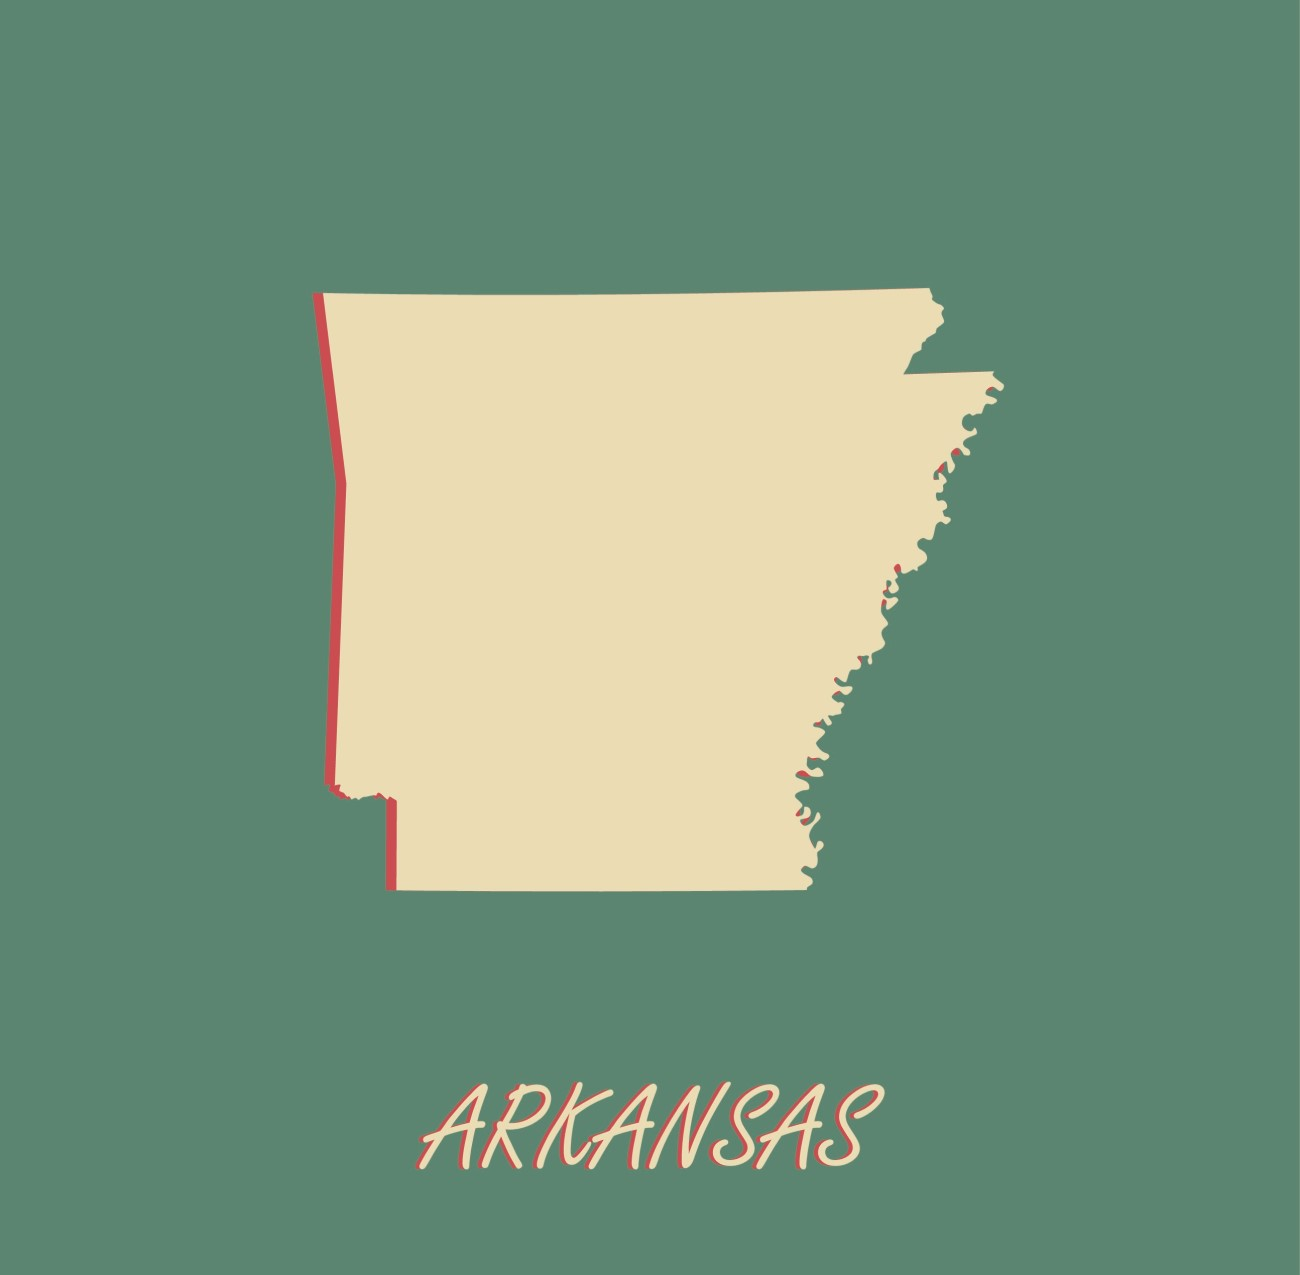 Nanny tax and payroll requirements for Arkansas families